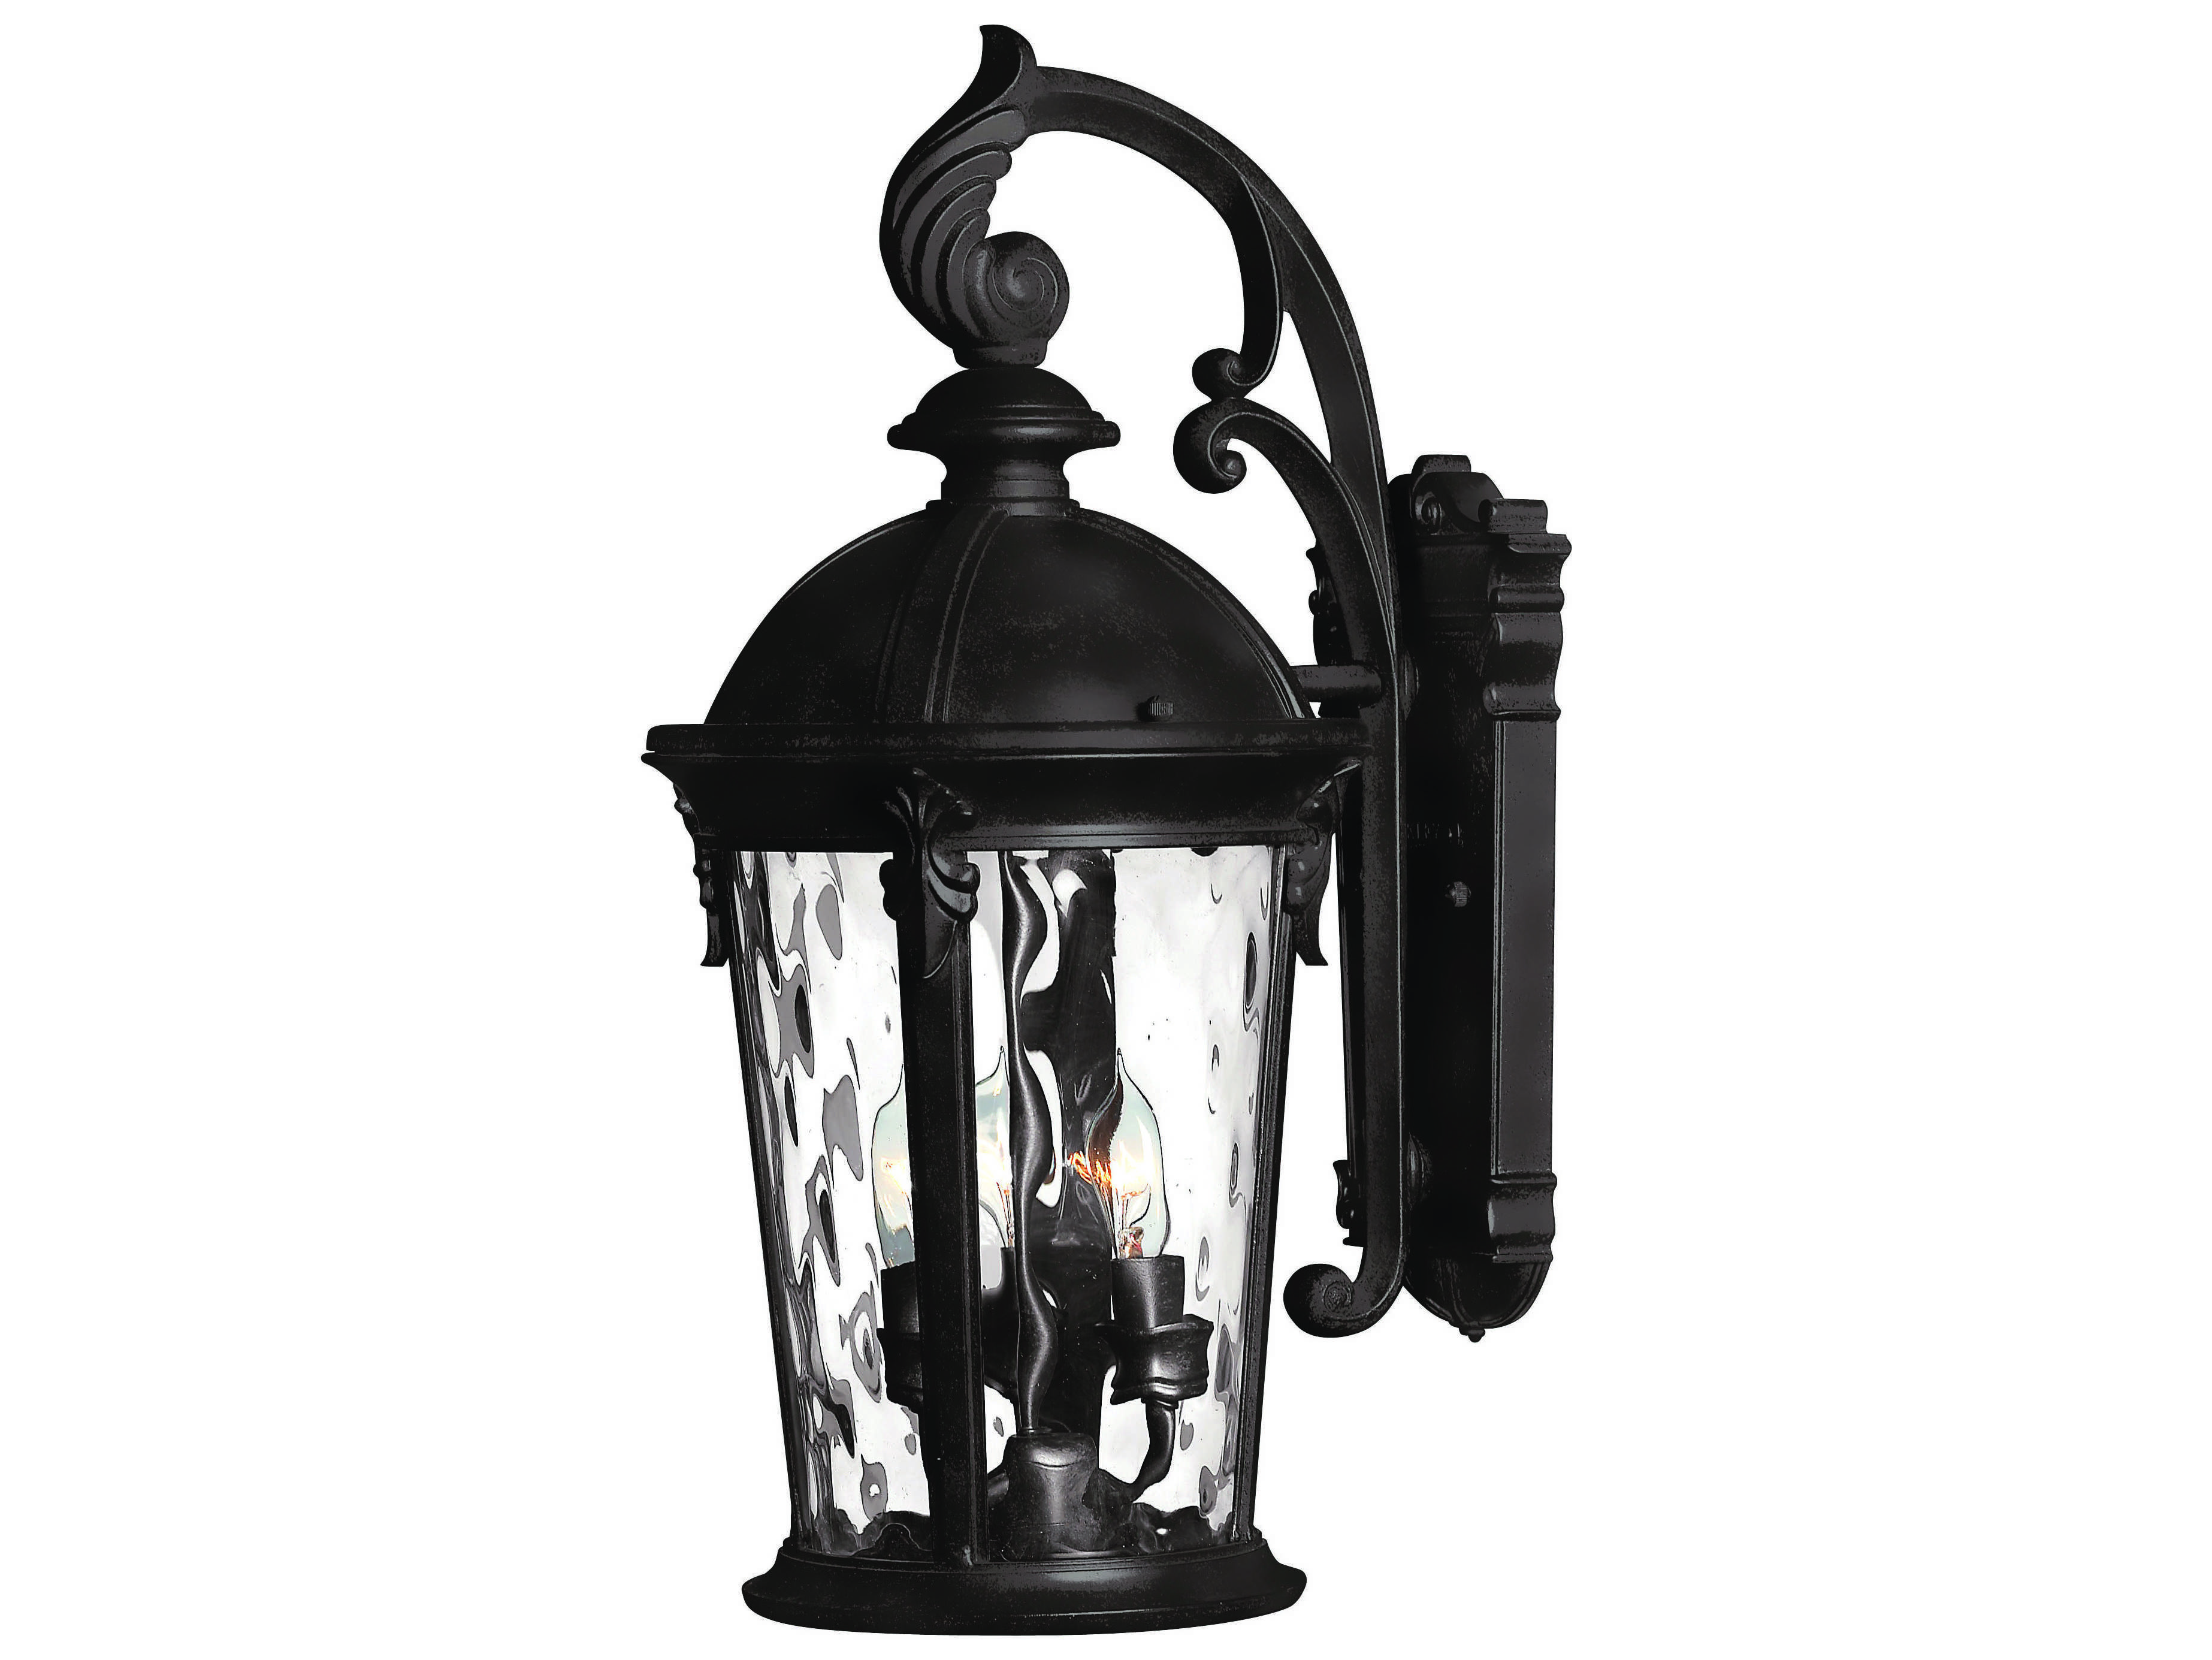 hinkley chat 06062018 purchase the astrid chandelier by hinkley lighting today at lumenscom free shipping on orders $75 or more and guaranteed low prices.